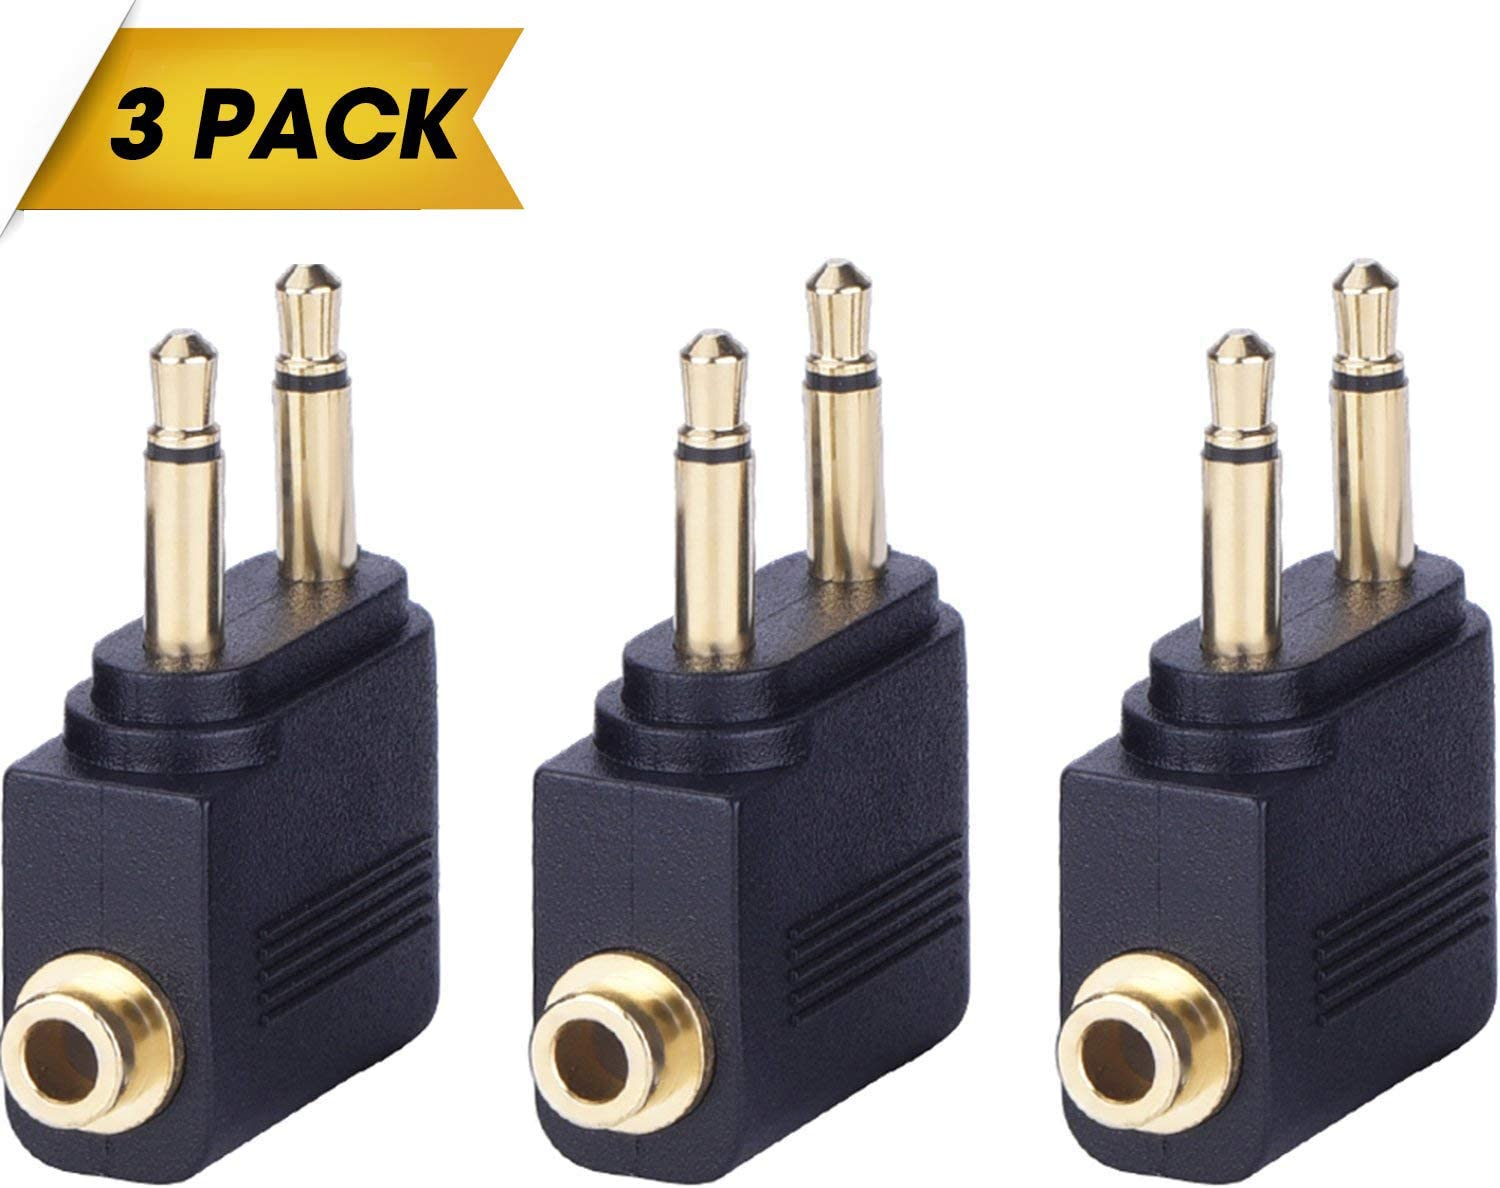 Dual 3.5mm Male to 3.5mm Female AUX Audio Jack Adapter Converter 2 Male to 1 Female Headphone Audio Adapter for Headphone on Airplane Airline Flight Airplane Airline Flight Adapter 3 Pack